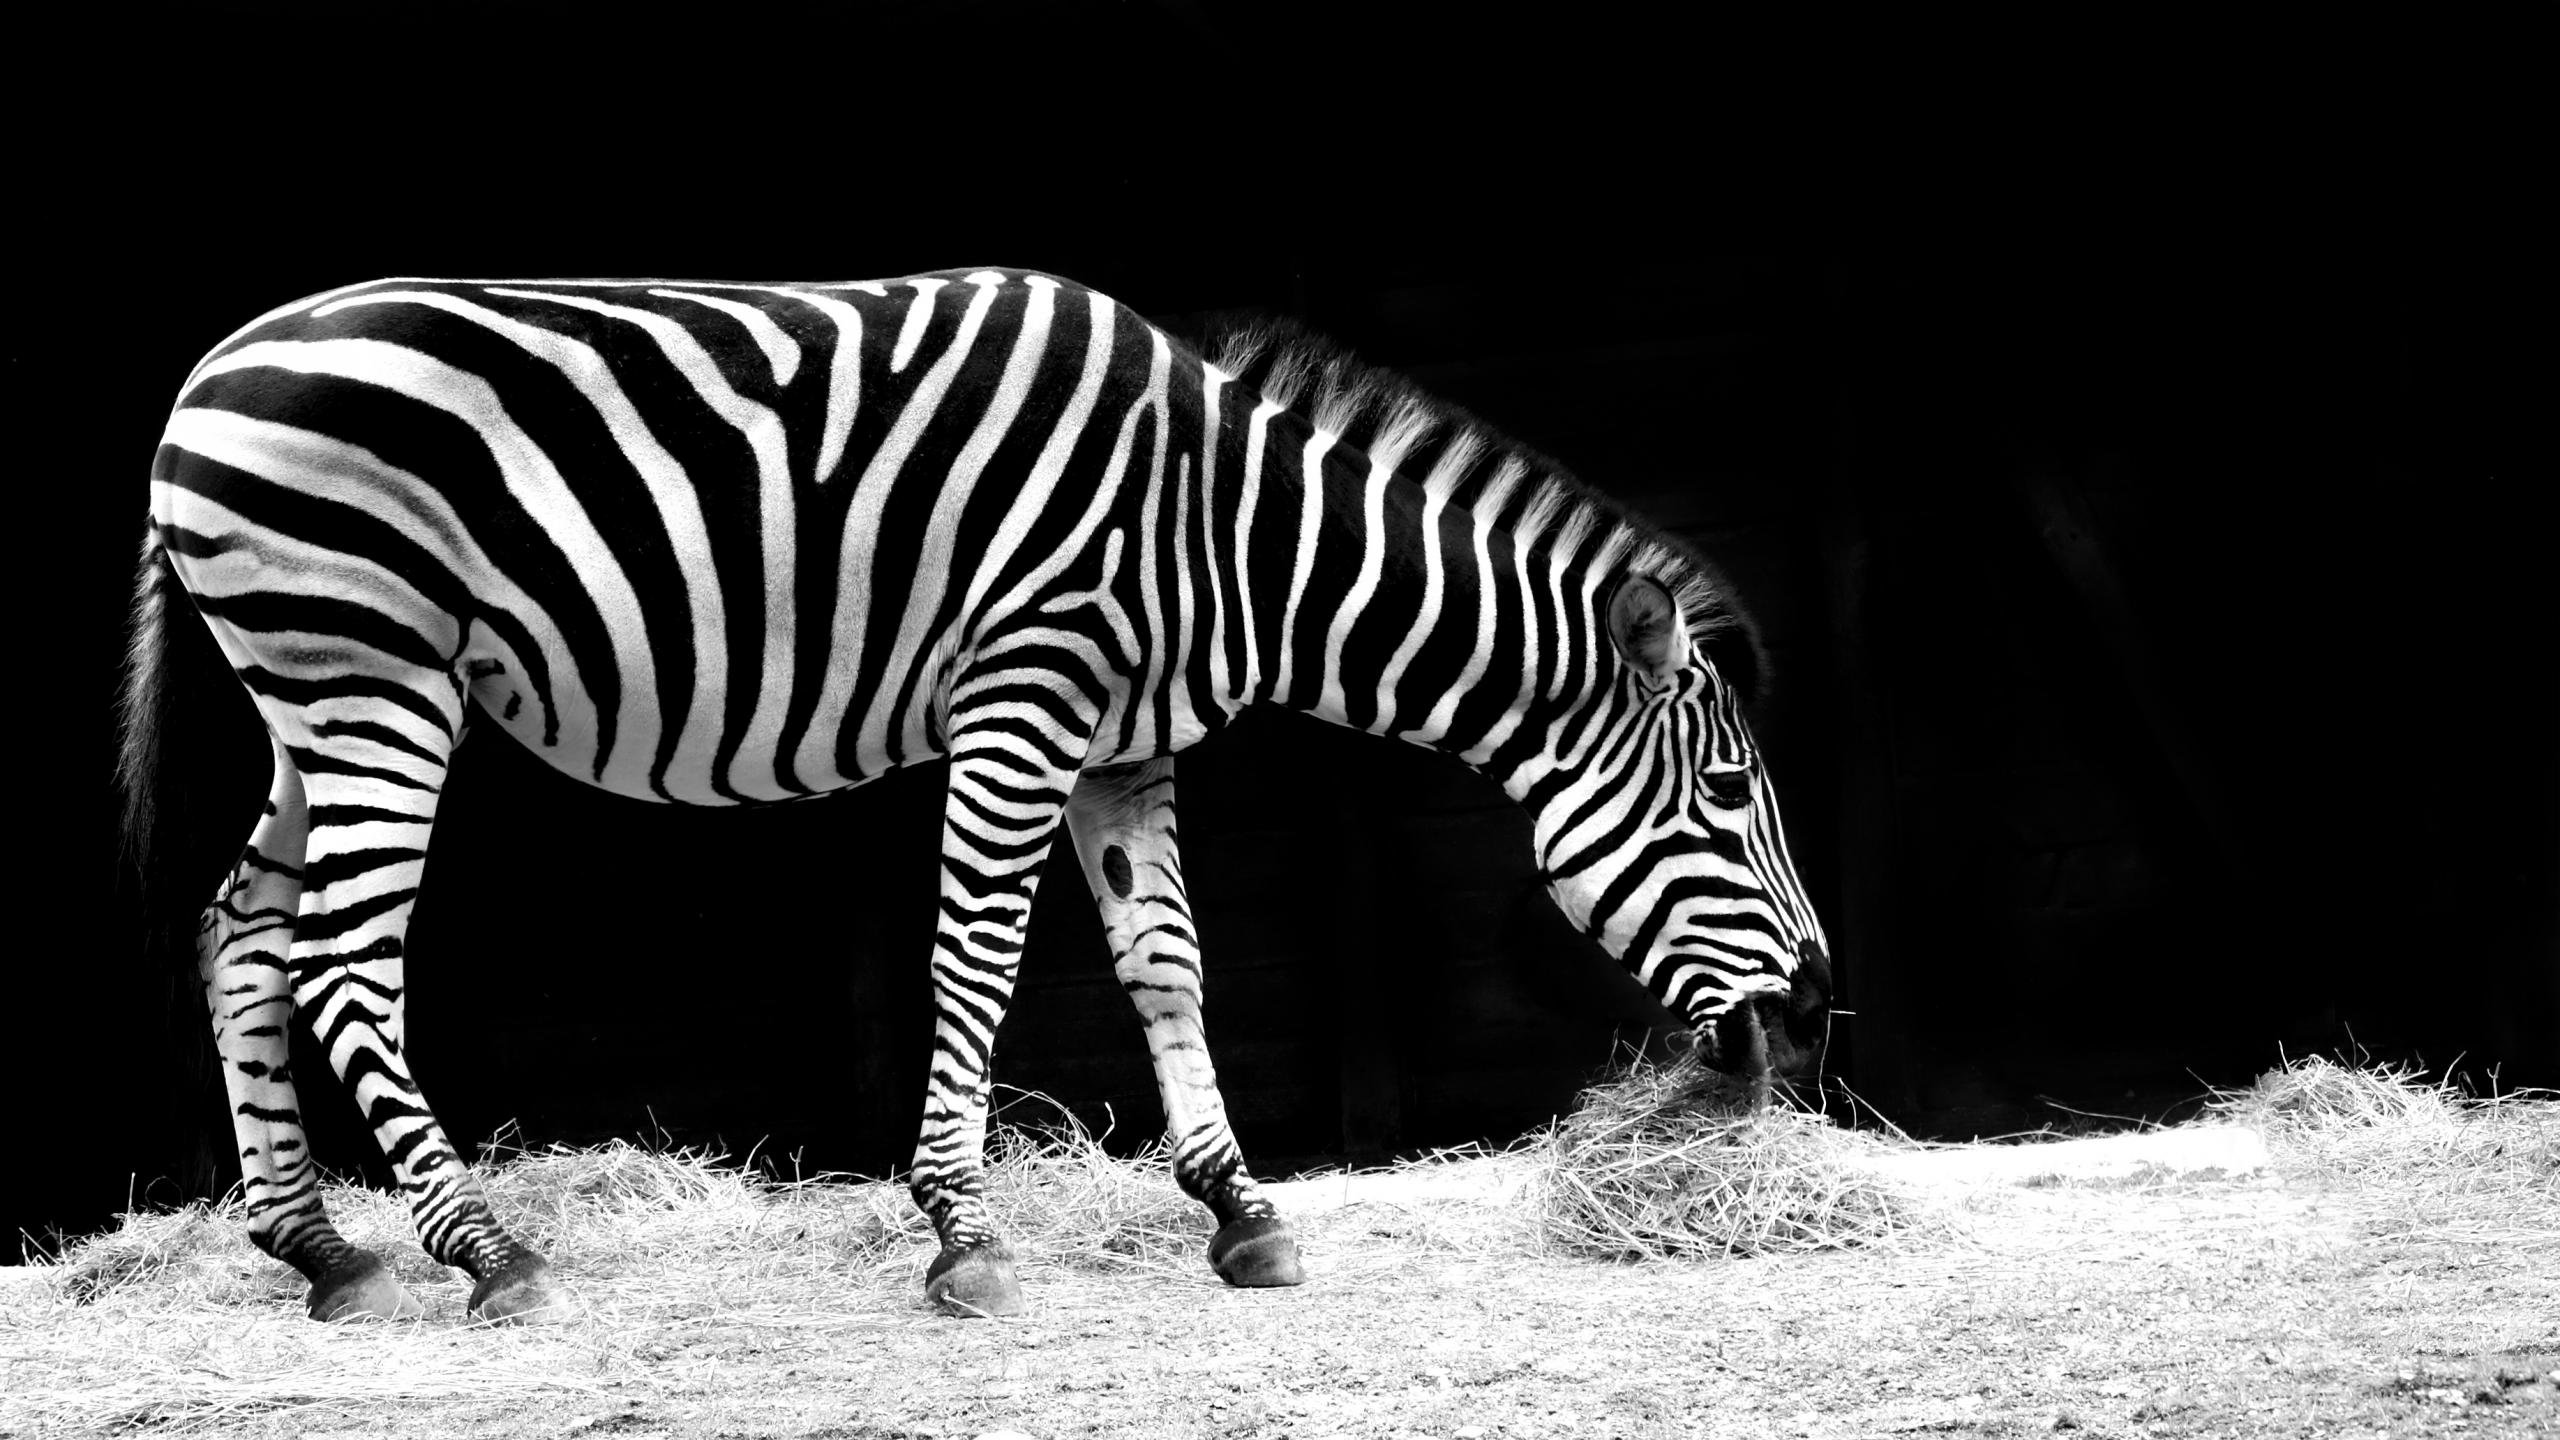 High resolution Zebra hd 2560x1440 wallpaper ID:73775 for computer